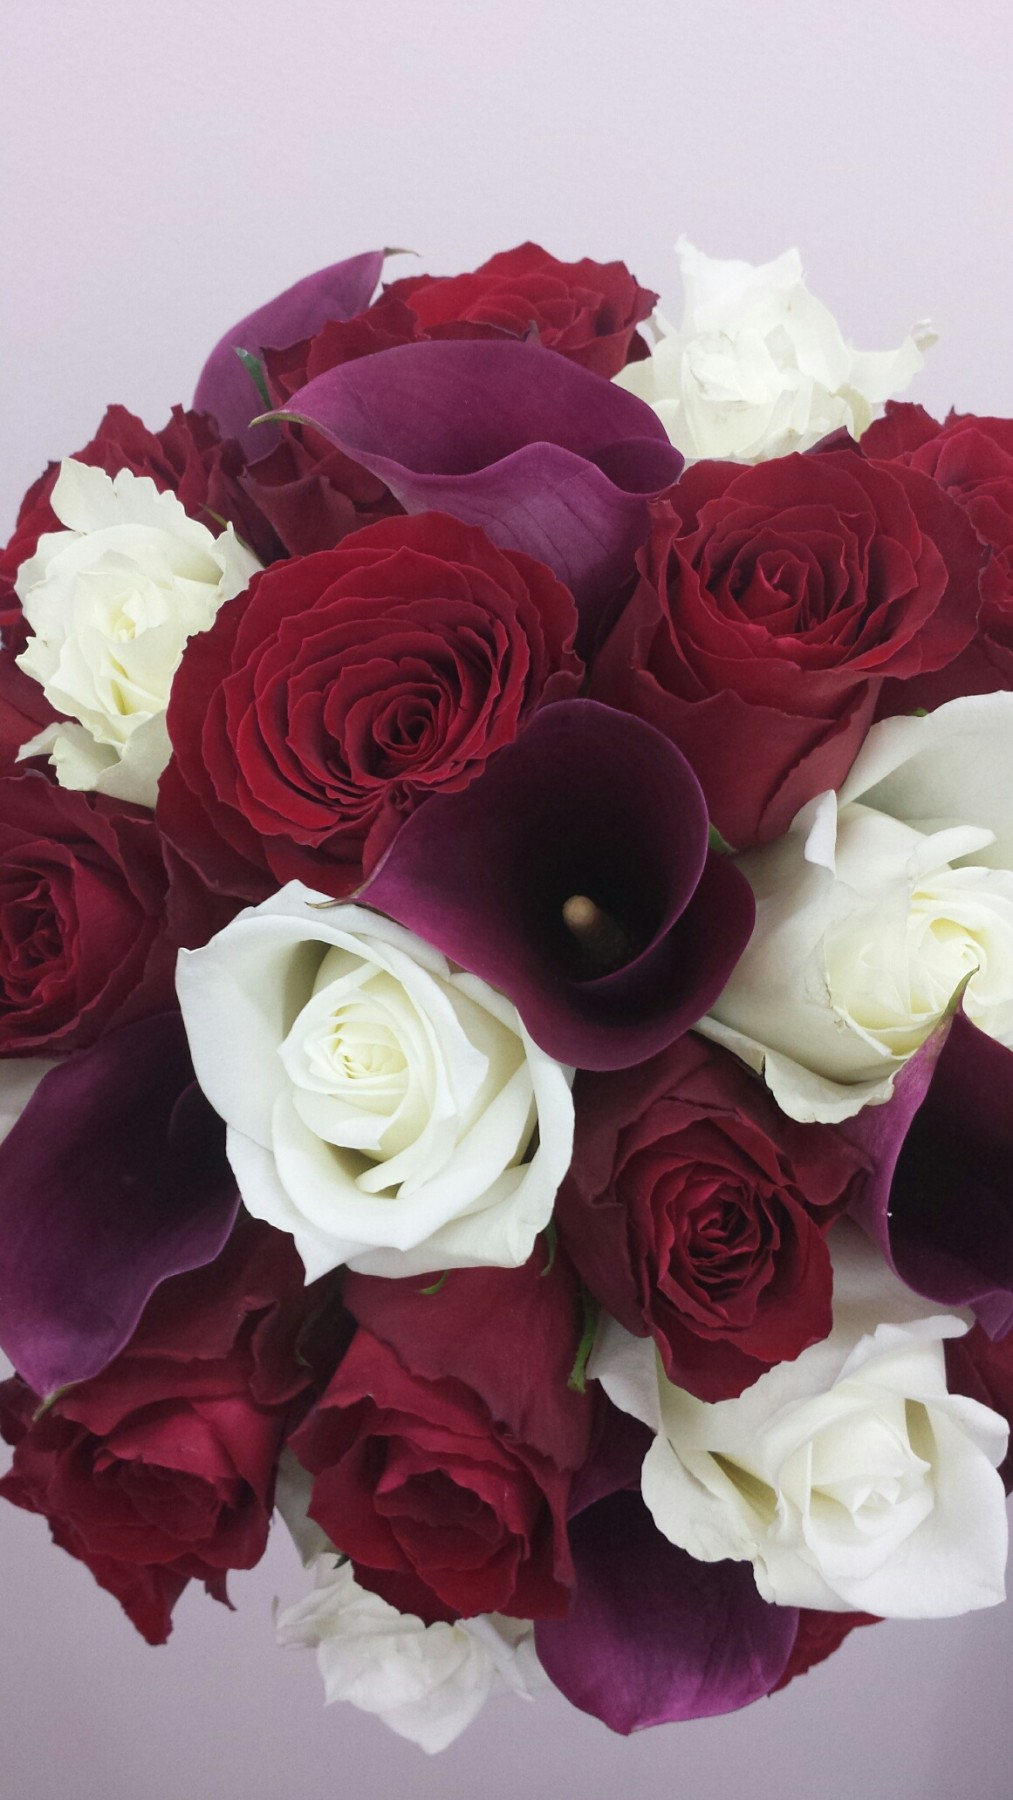 roses and calla lilies